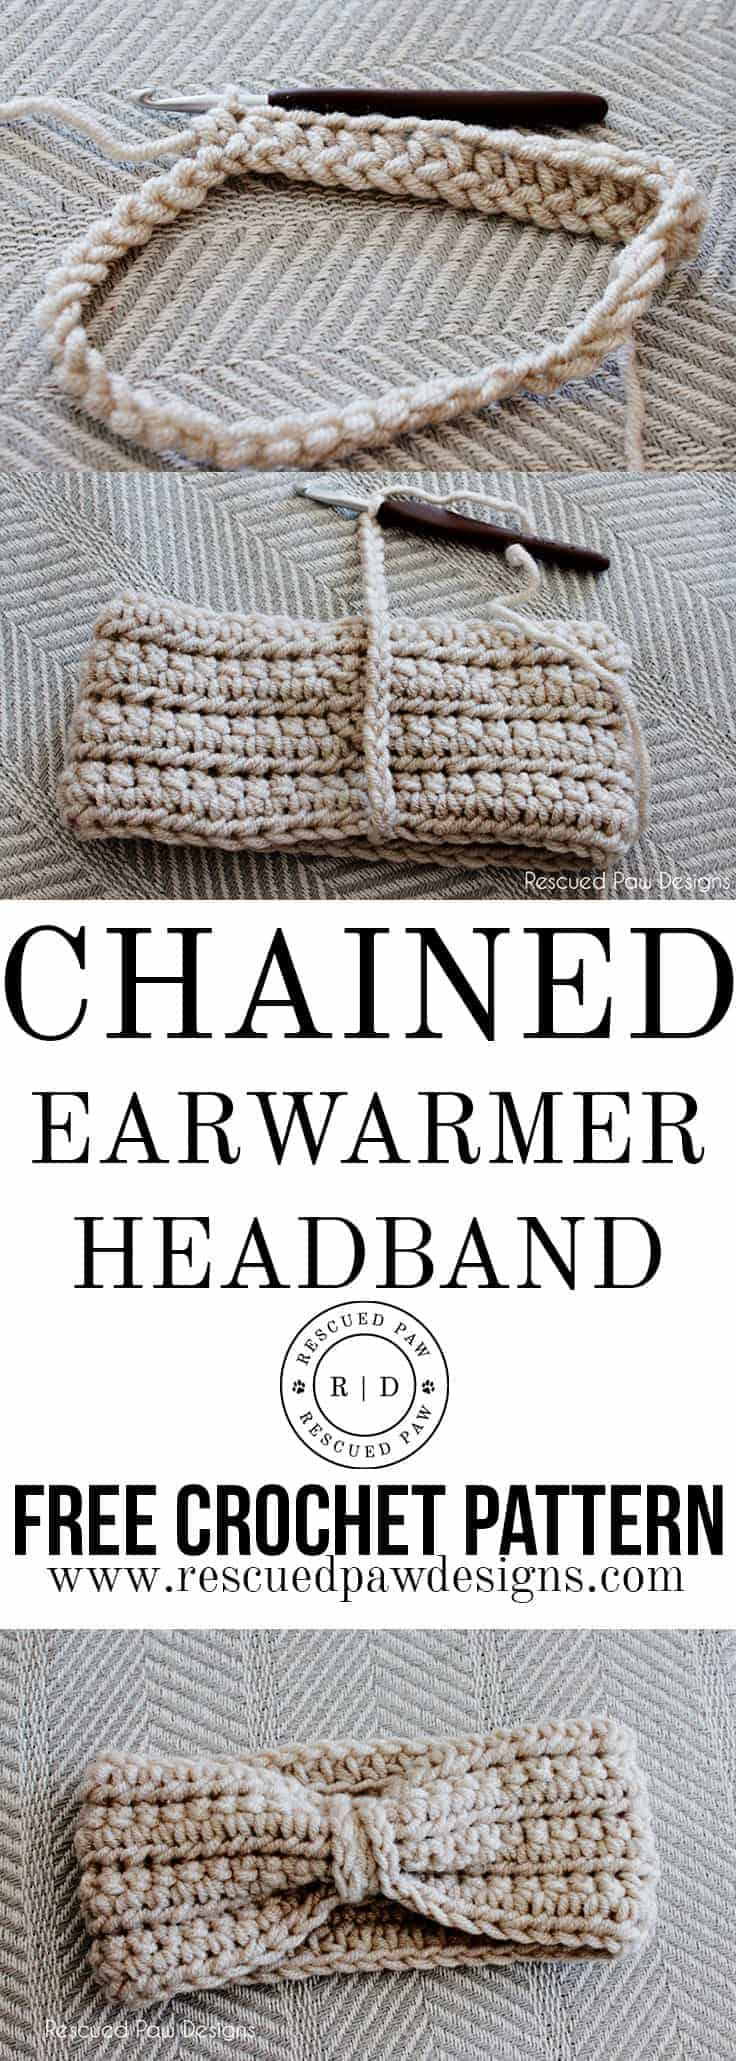 Ear Warmer Headband Crochet Pattern